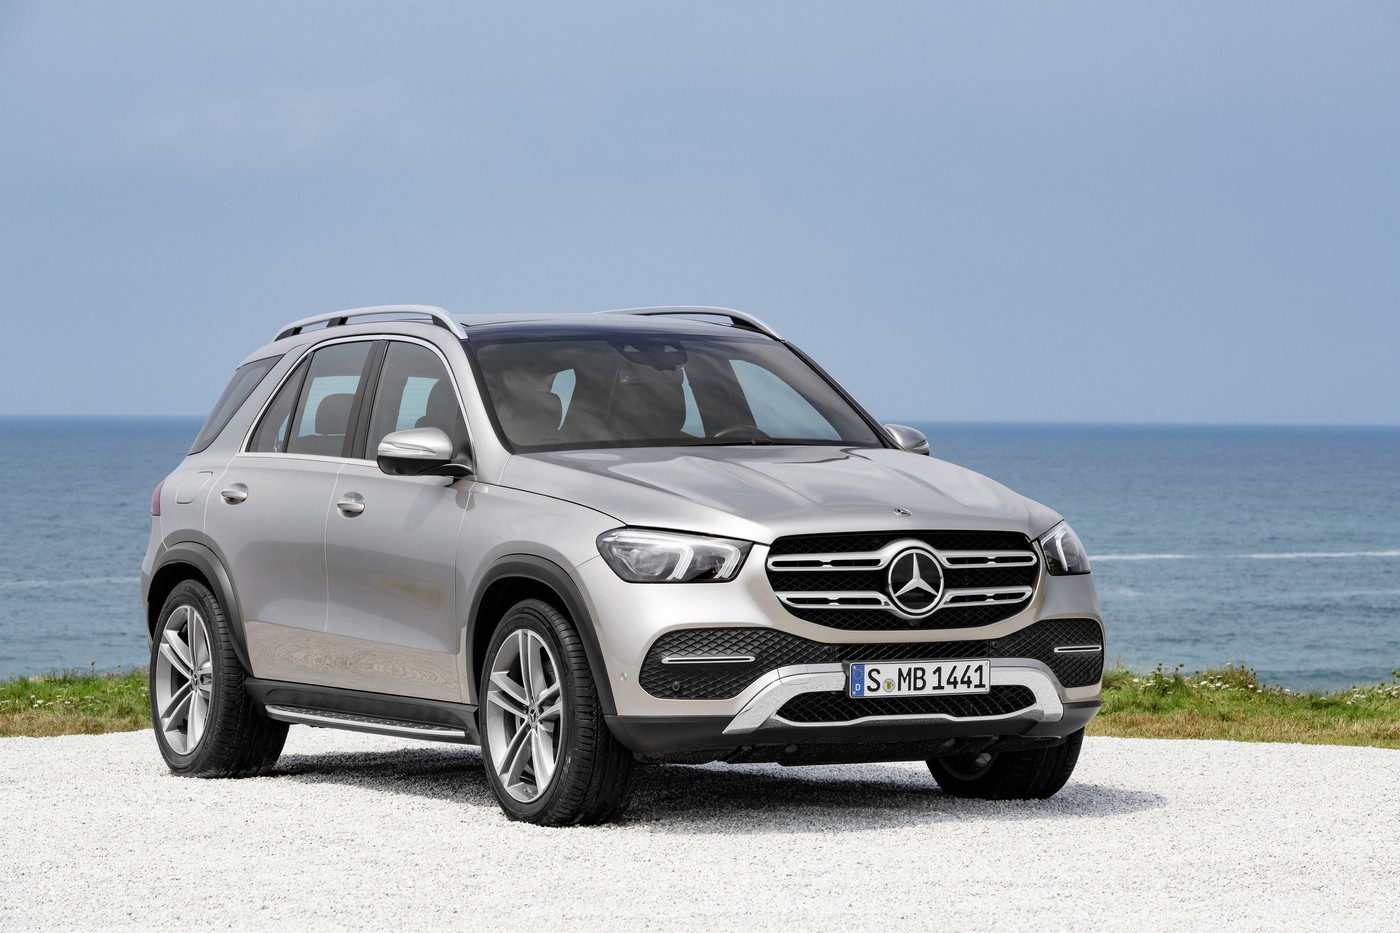 The 2020 Mercedes-Benz GLE unveiled comes with Intelligent ...